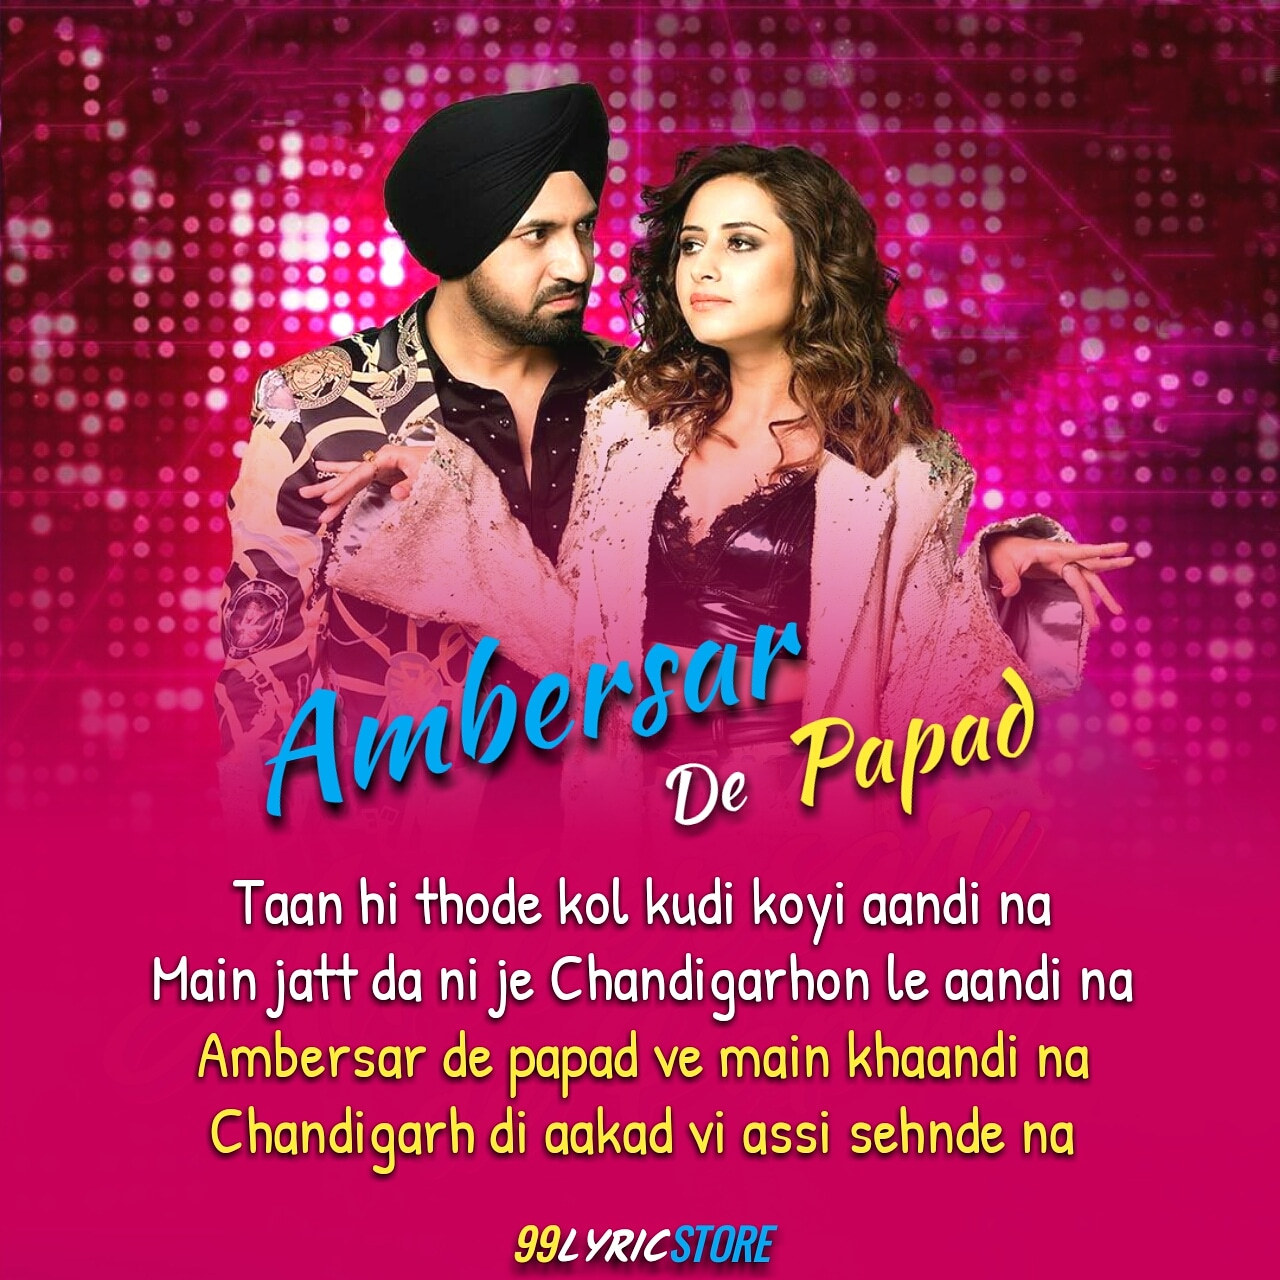 Ambersar De Papad Punjabi Song Lyrics sung by Gippy Grewal and Sunidhi Chauhan